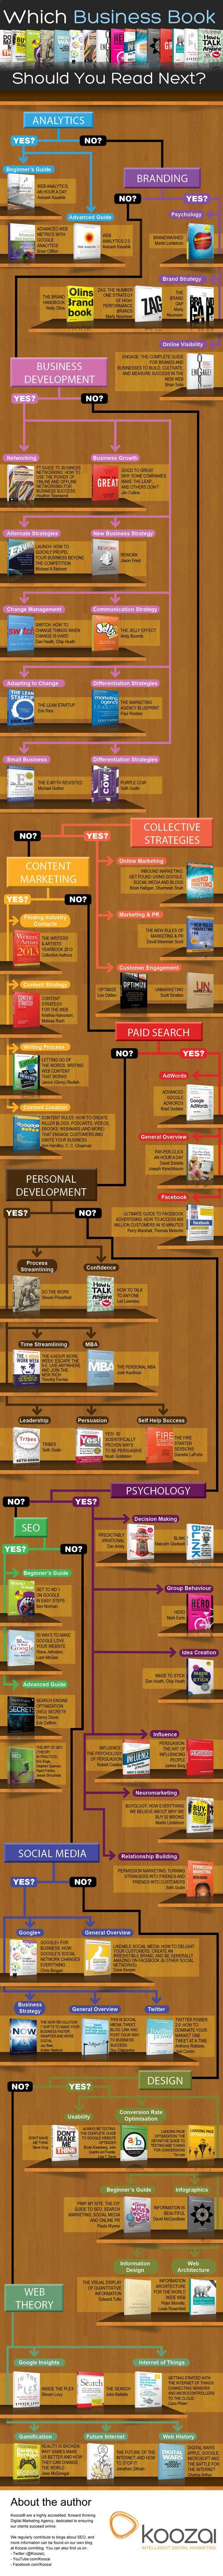 244 best booksreadinglearning images on pinterest reading beds best business books to read 12 types of ebooks to use for growing your business fandeluxe Image collections